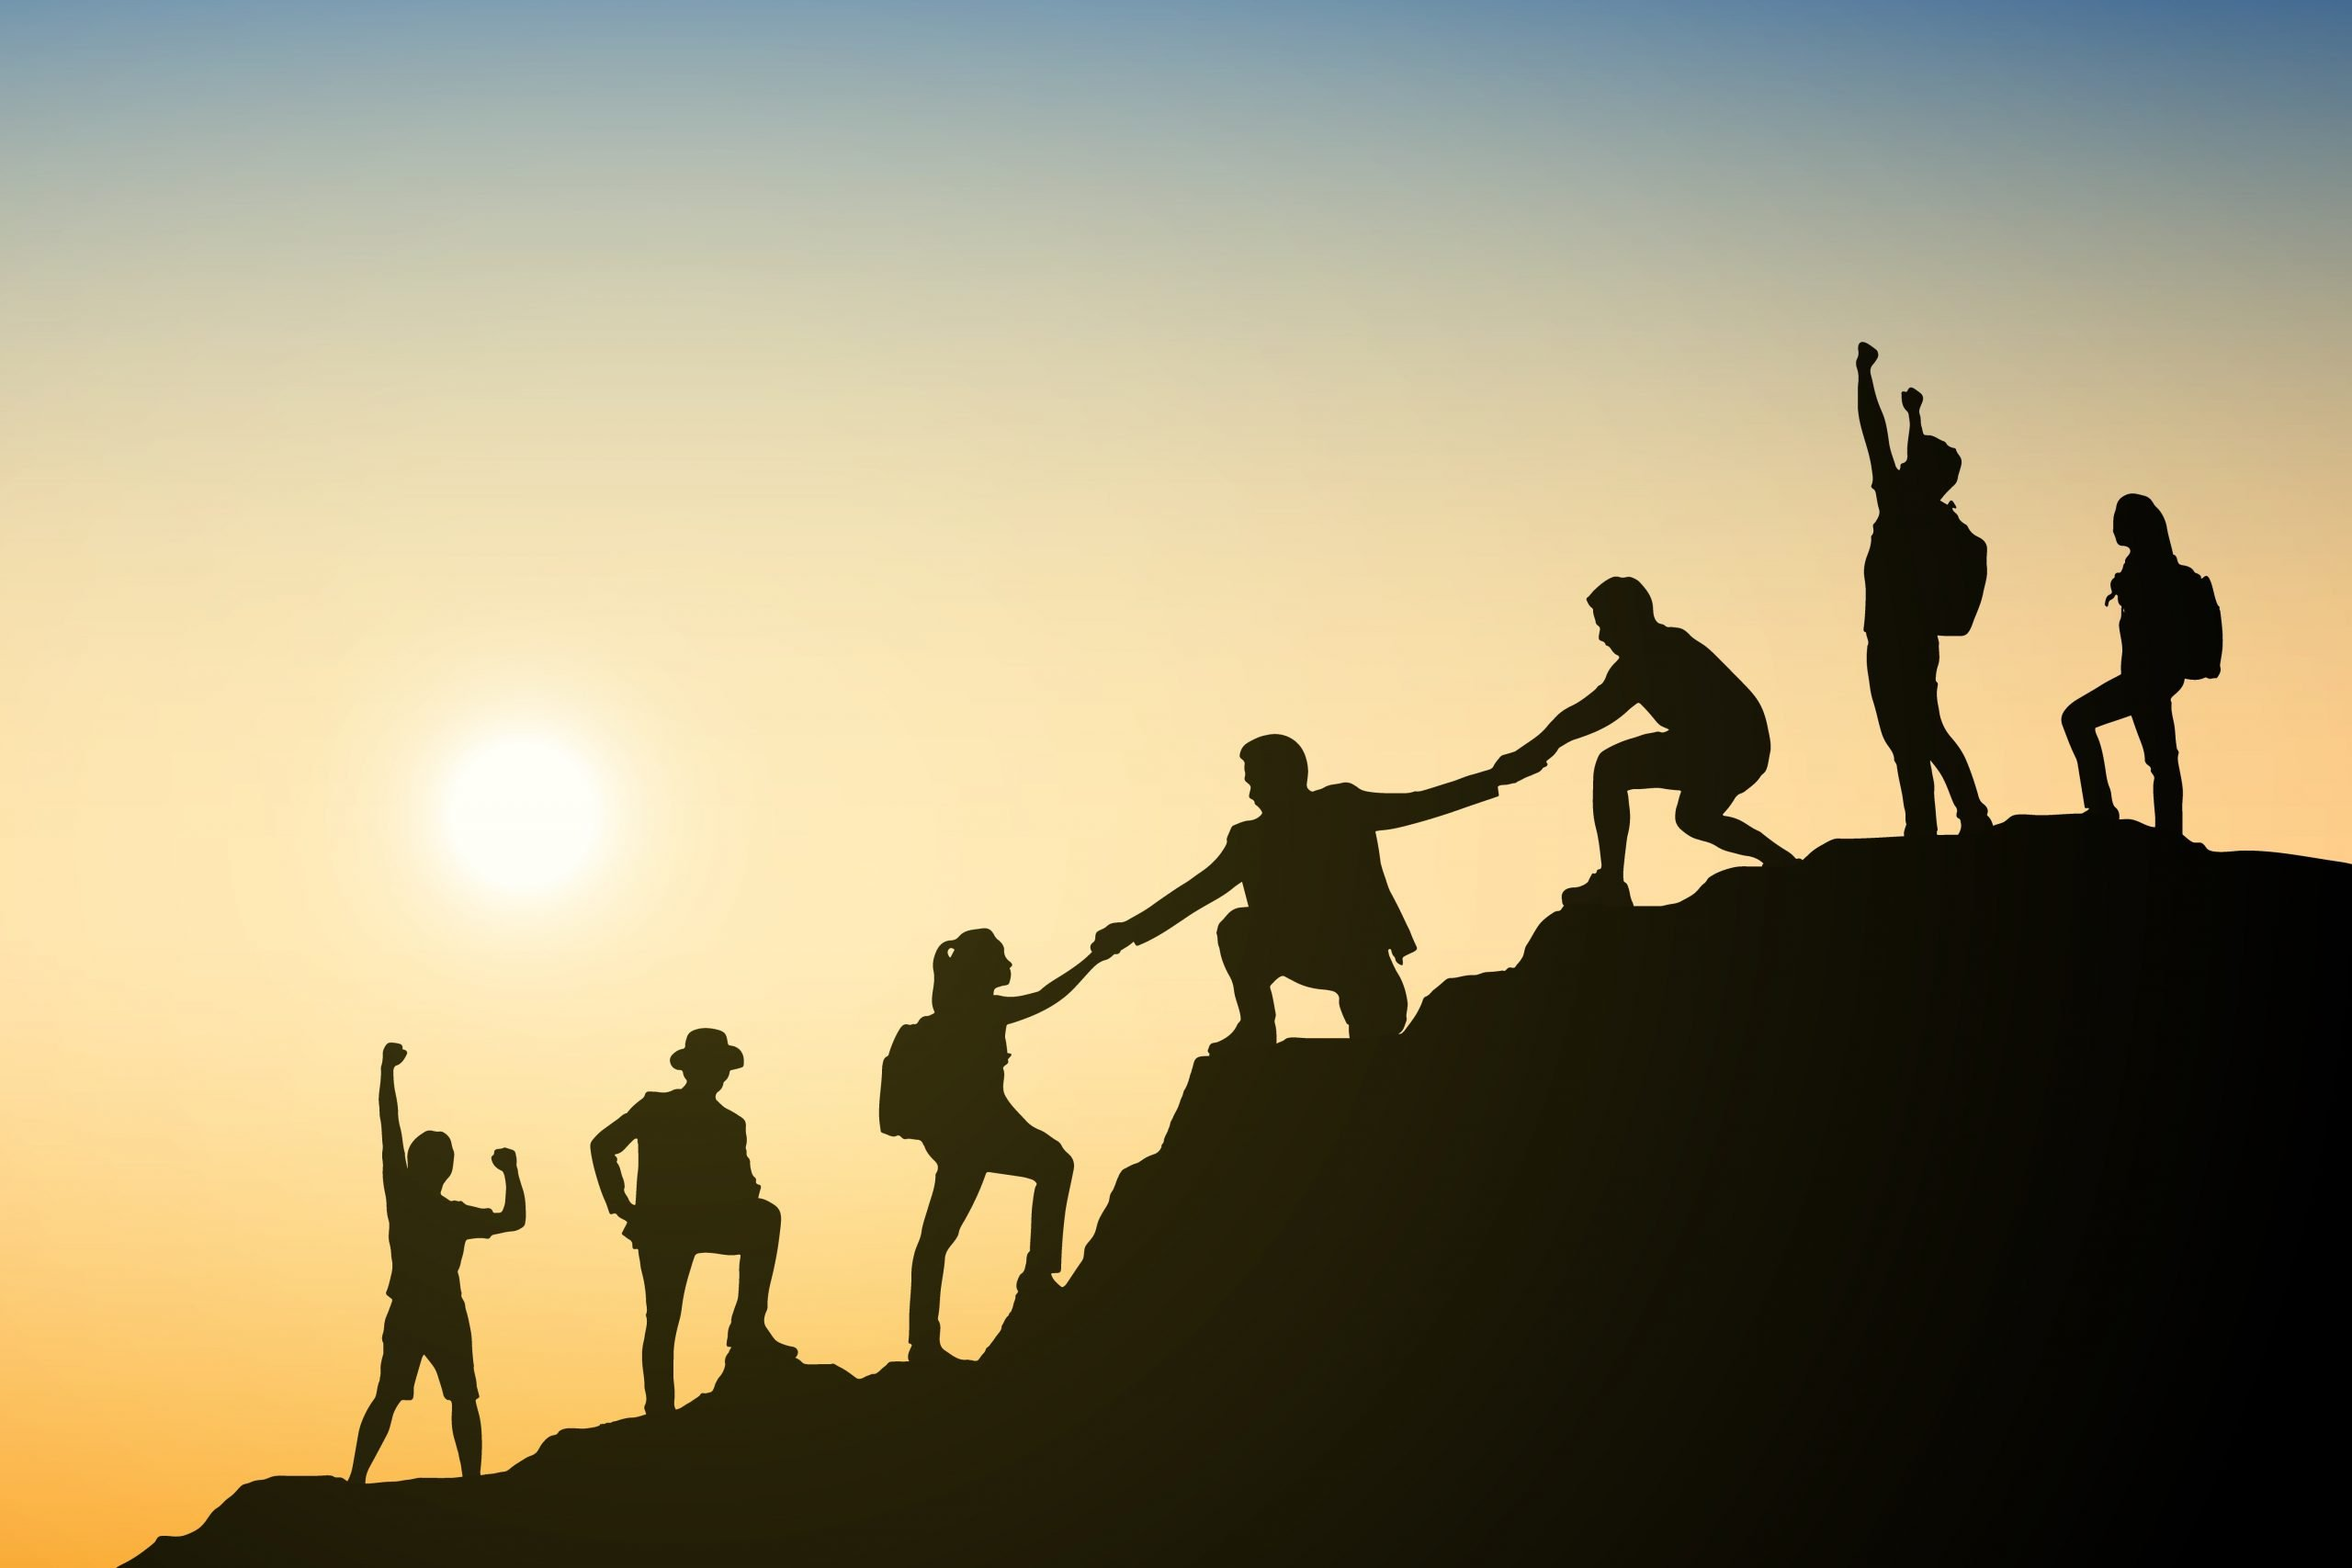 Silouette of team helping eachother climb mountain